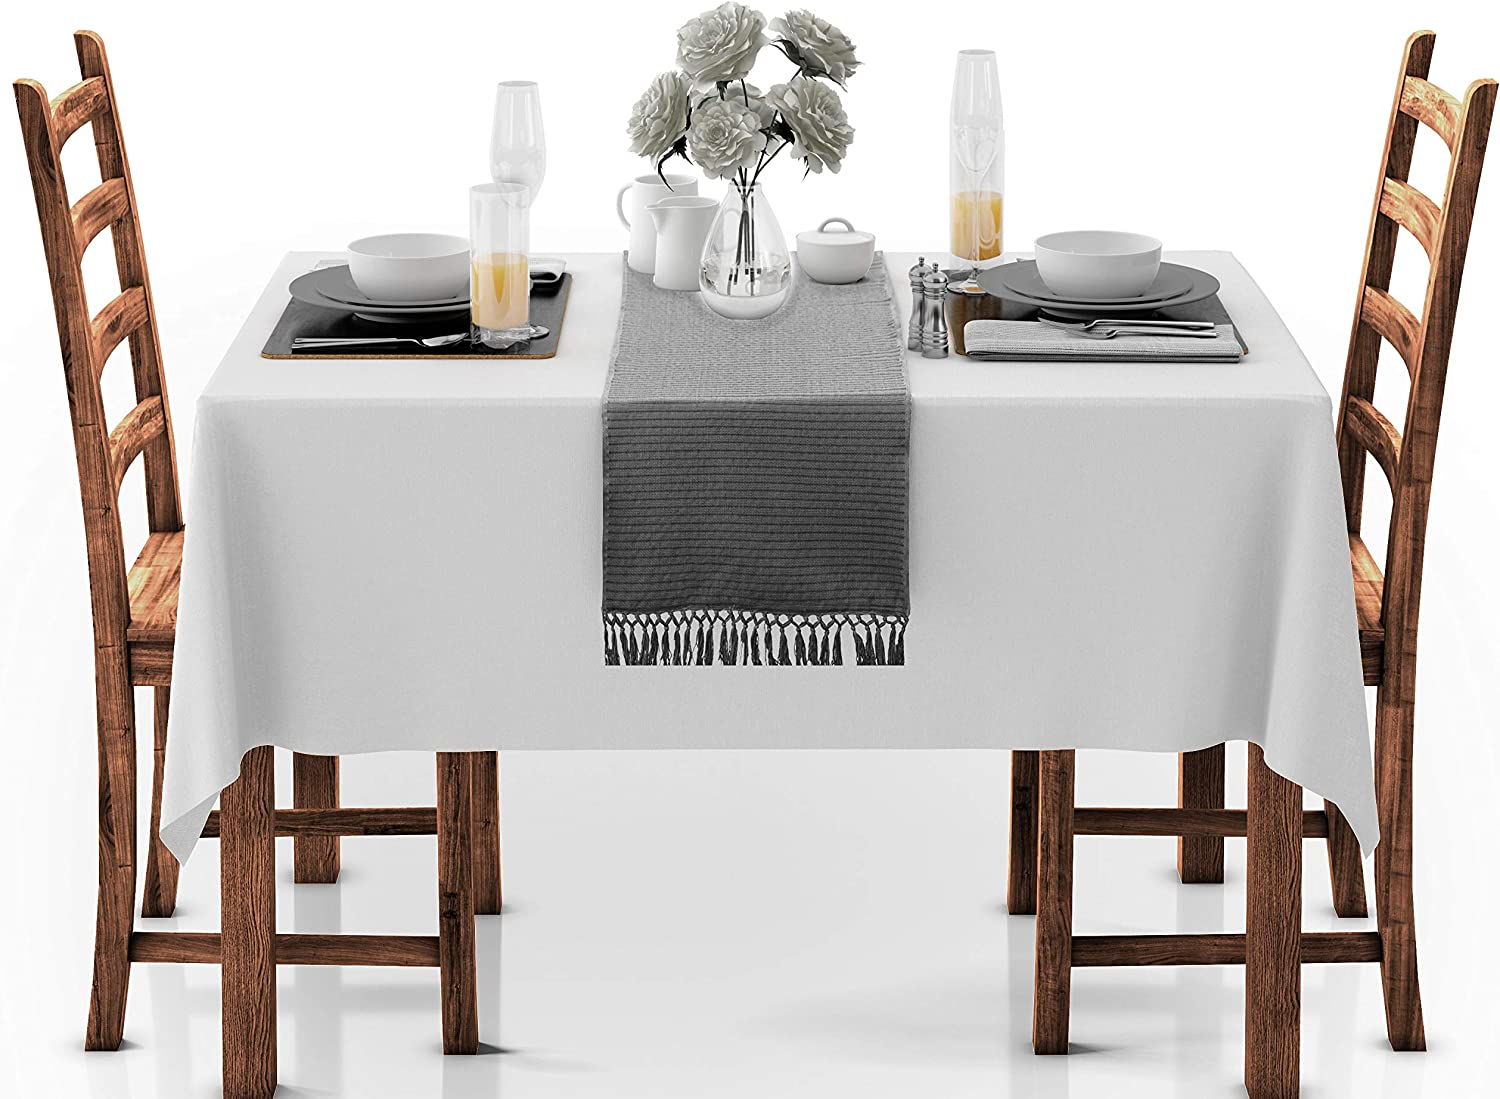 Cotton Clinic Set of 2 Table Runners Farmhouse 90 Inch Textured Woven 14x90 Cotton Wedding Table Runners Fringes Rustic Bridal Shower Decor Dining Table Runners Charcoal Gray